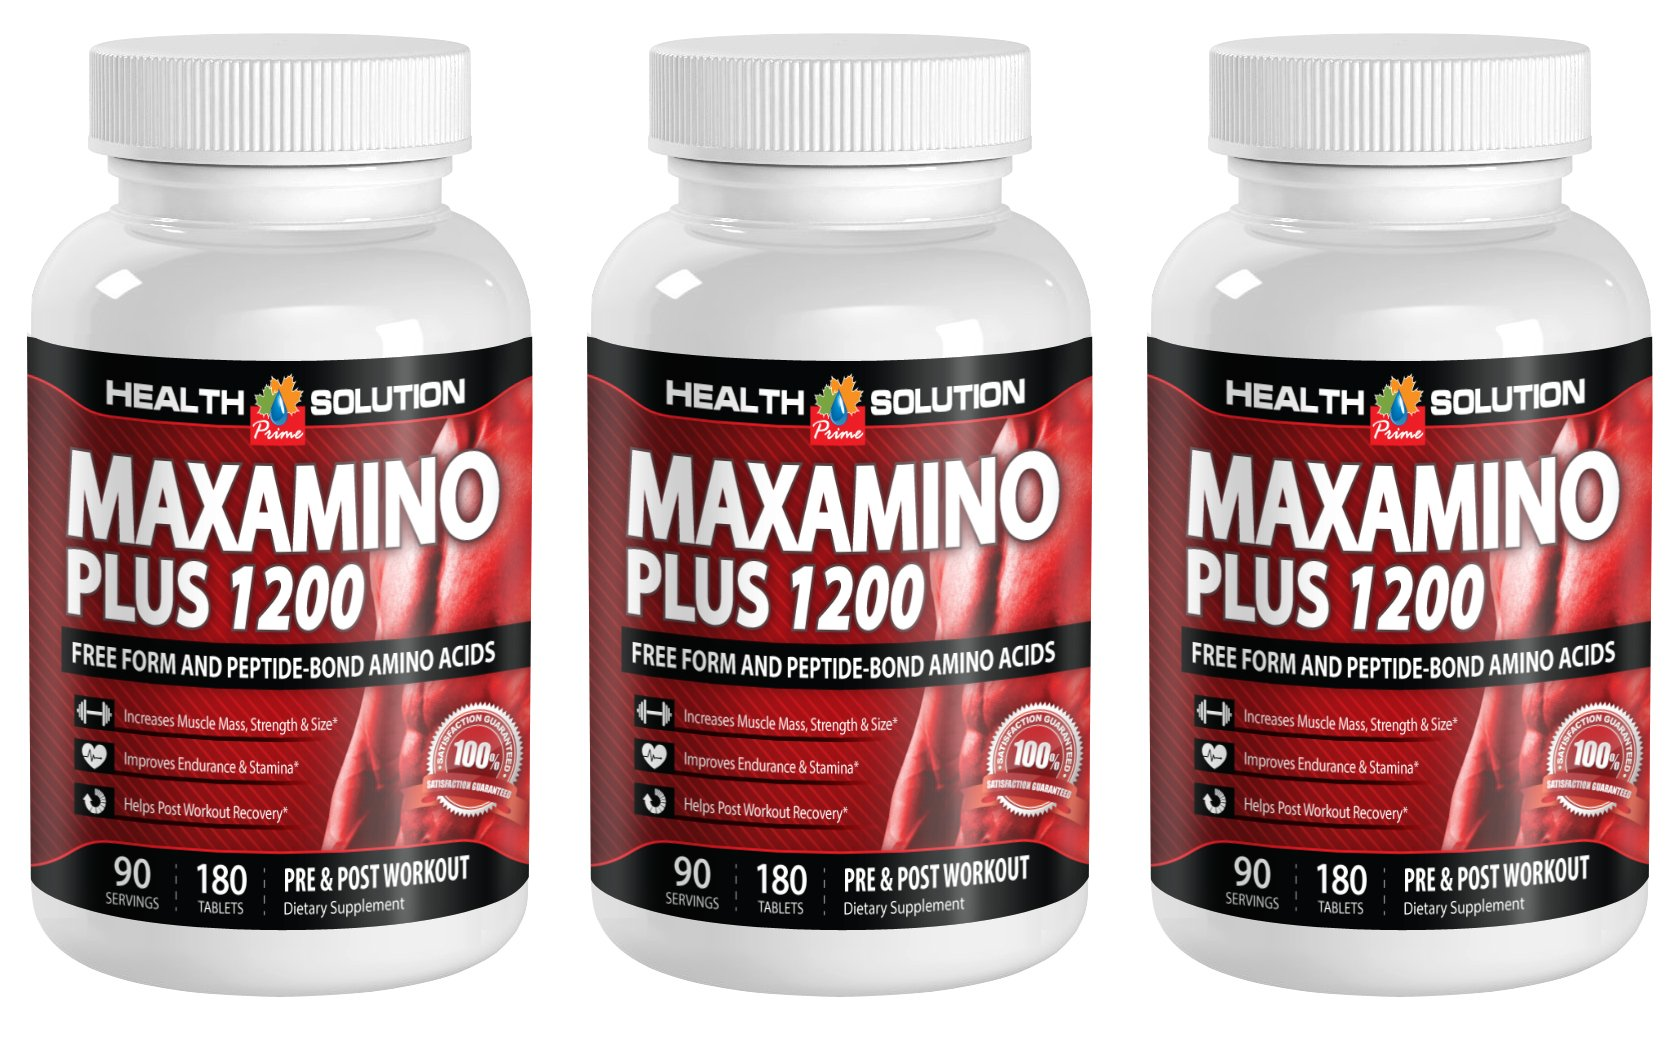 L carnitine weight loss - MAXAMINO PLUS 1200 - boost athletic performance (3 Bottles)